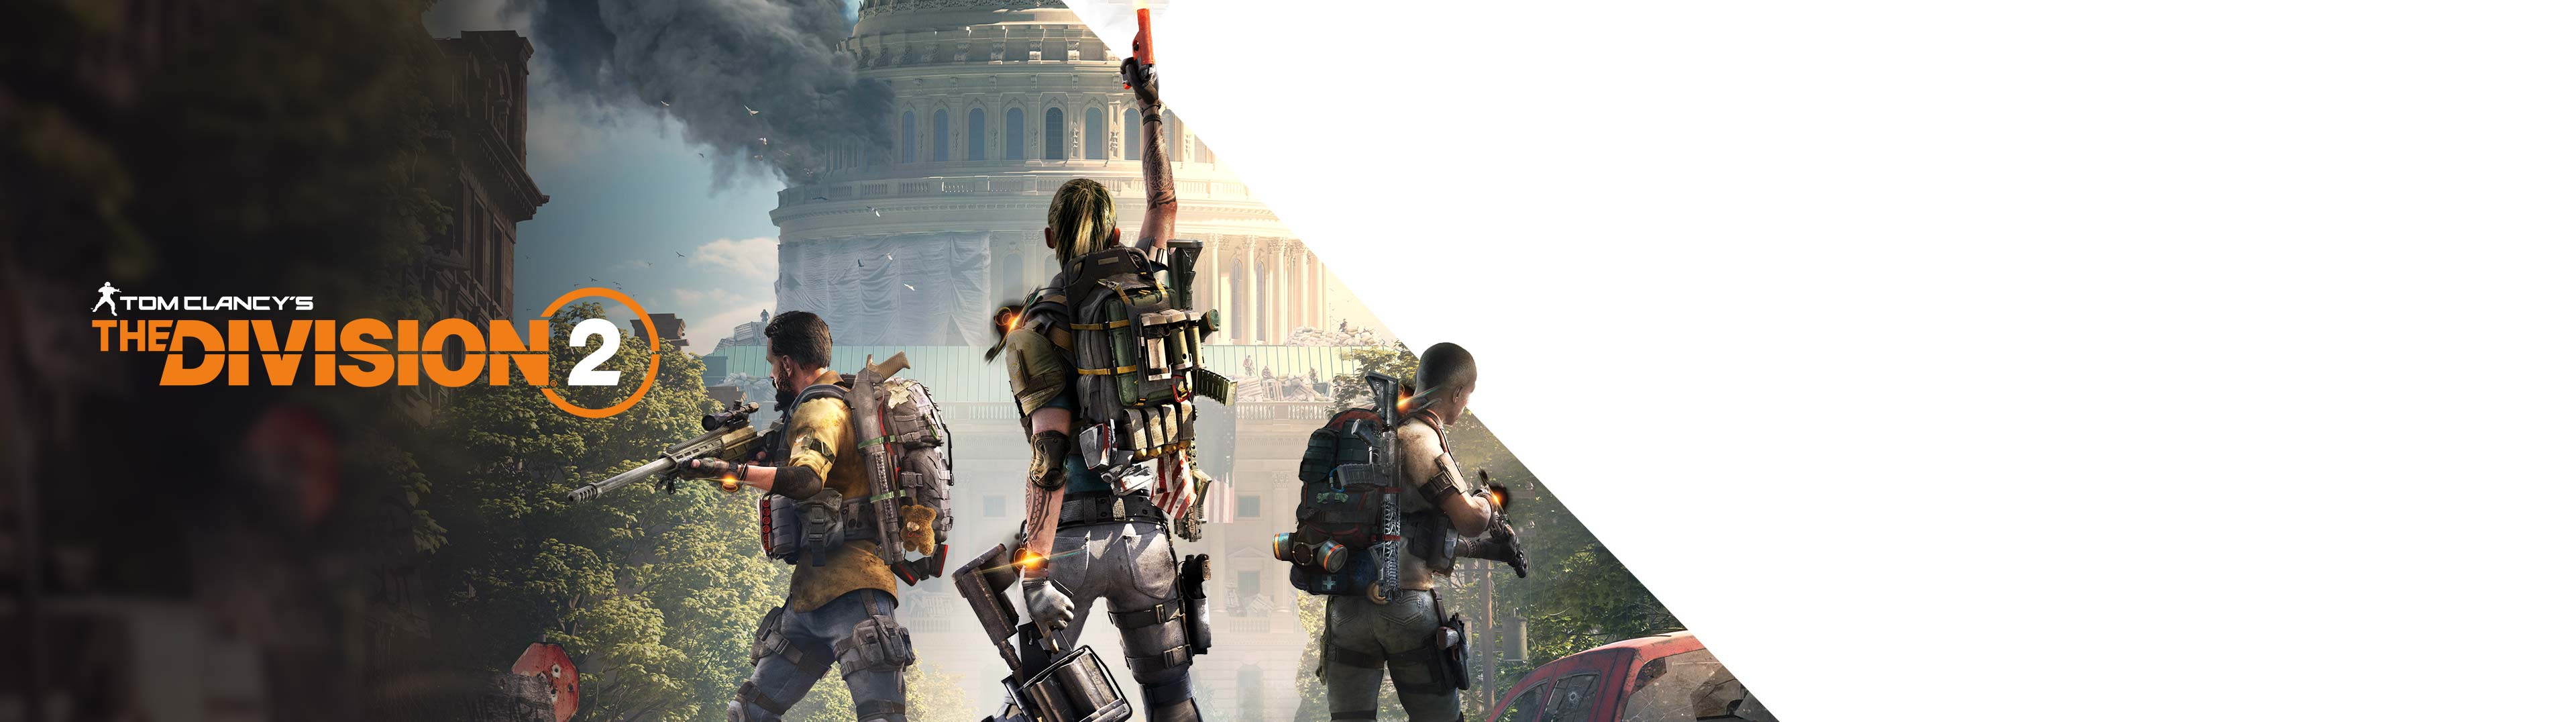 SAVE UP TO 67% OFF THE DIVISION 2